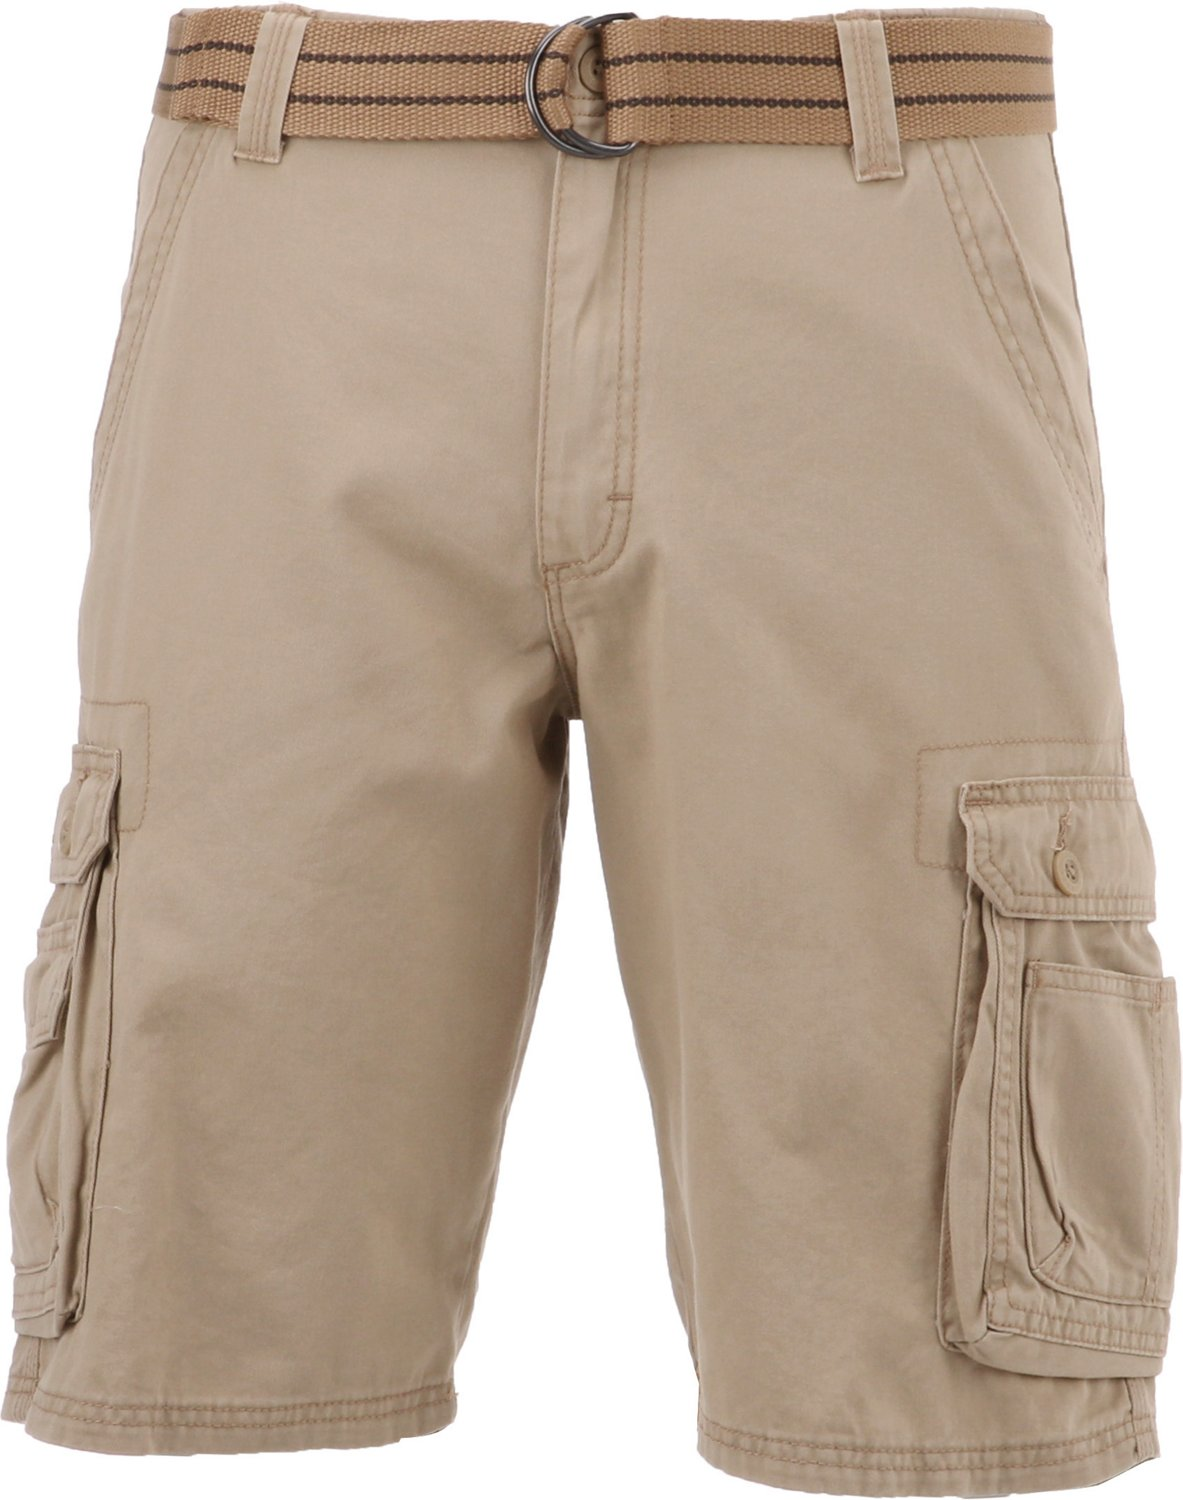 5f9ddf24ac Display product reviews for Lee Men's Wyoming Belted Cargo Short